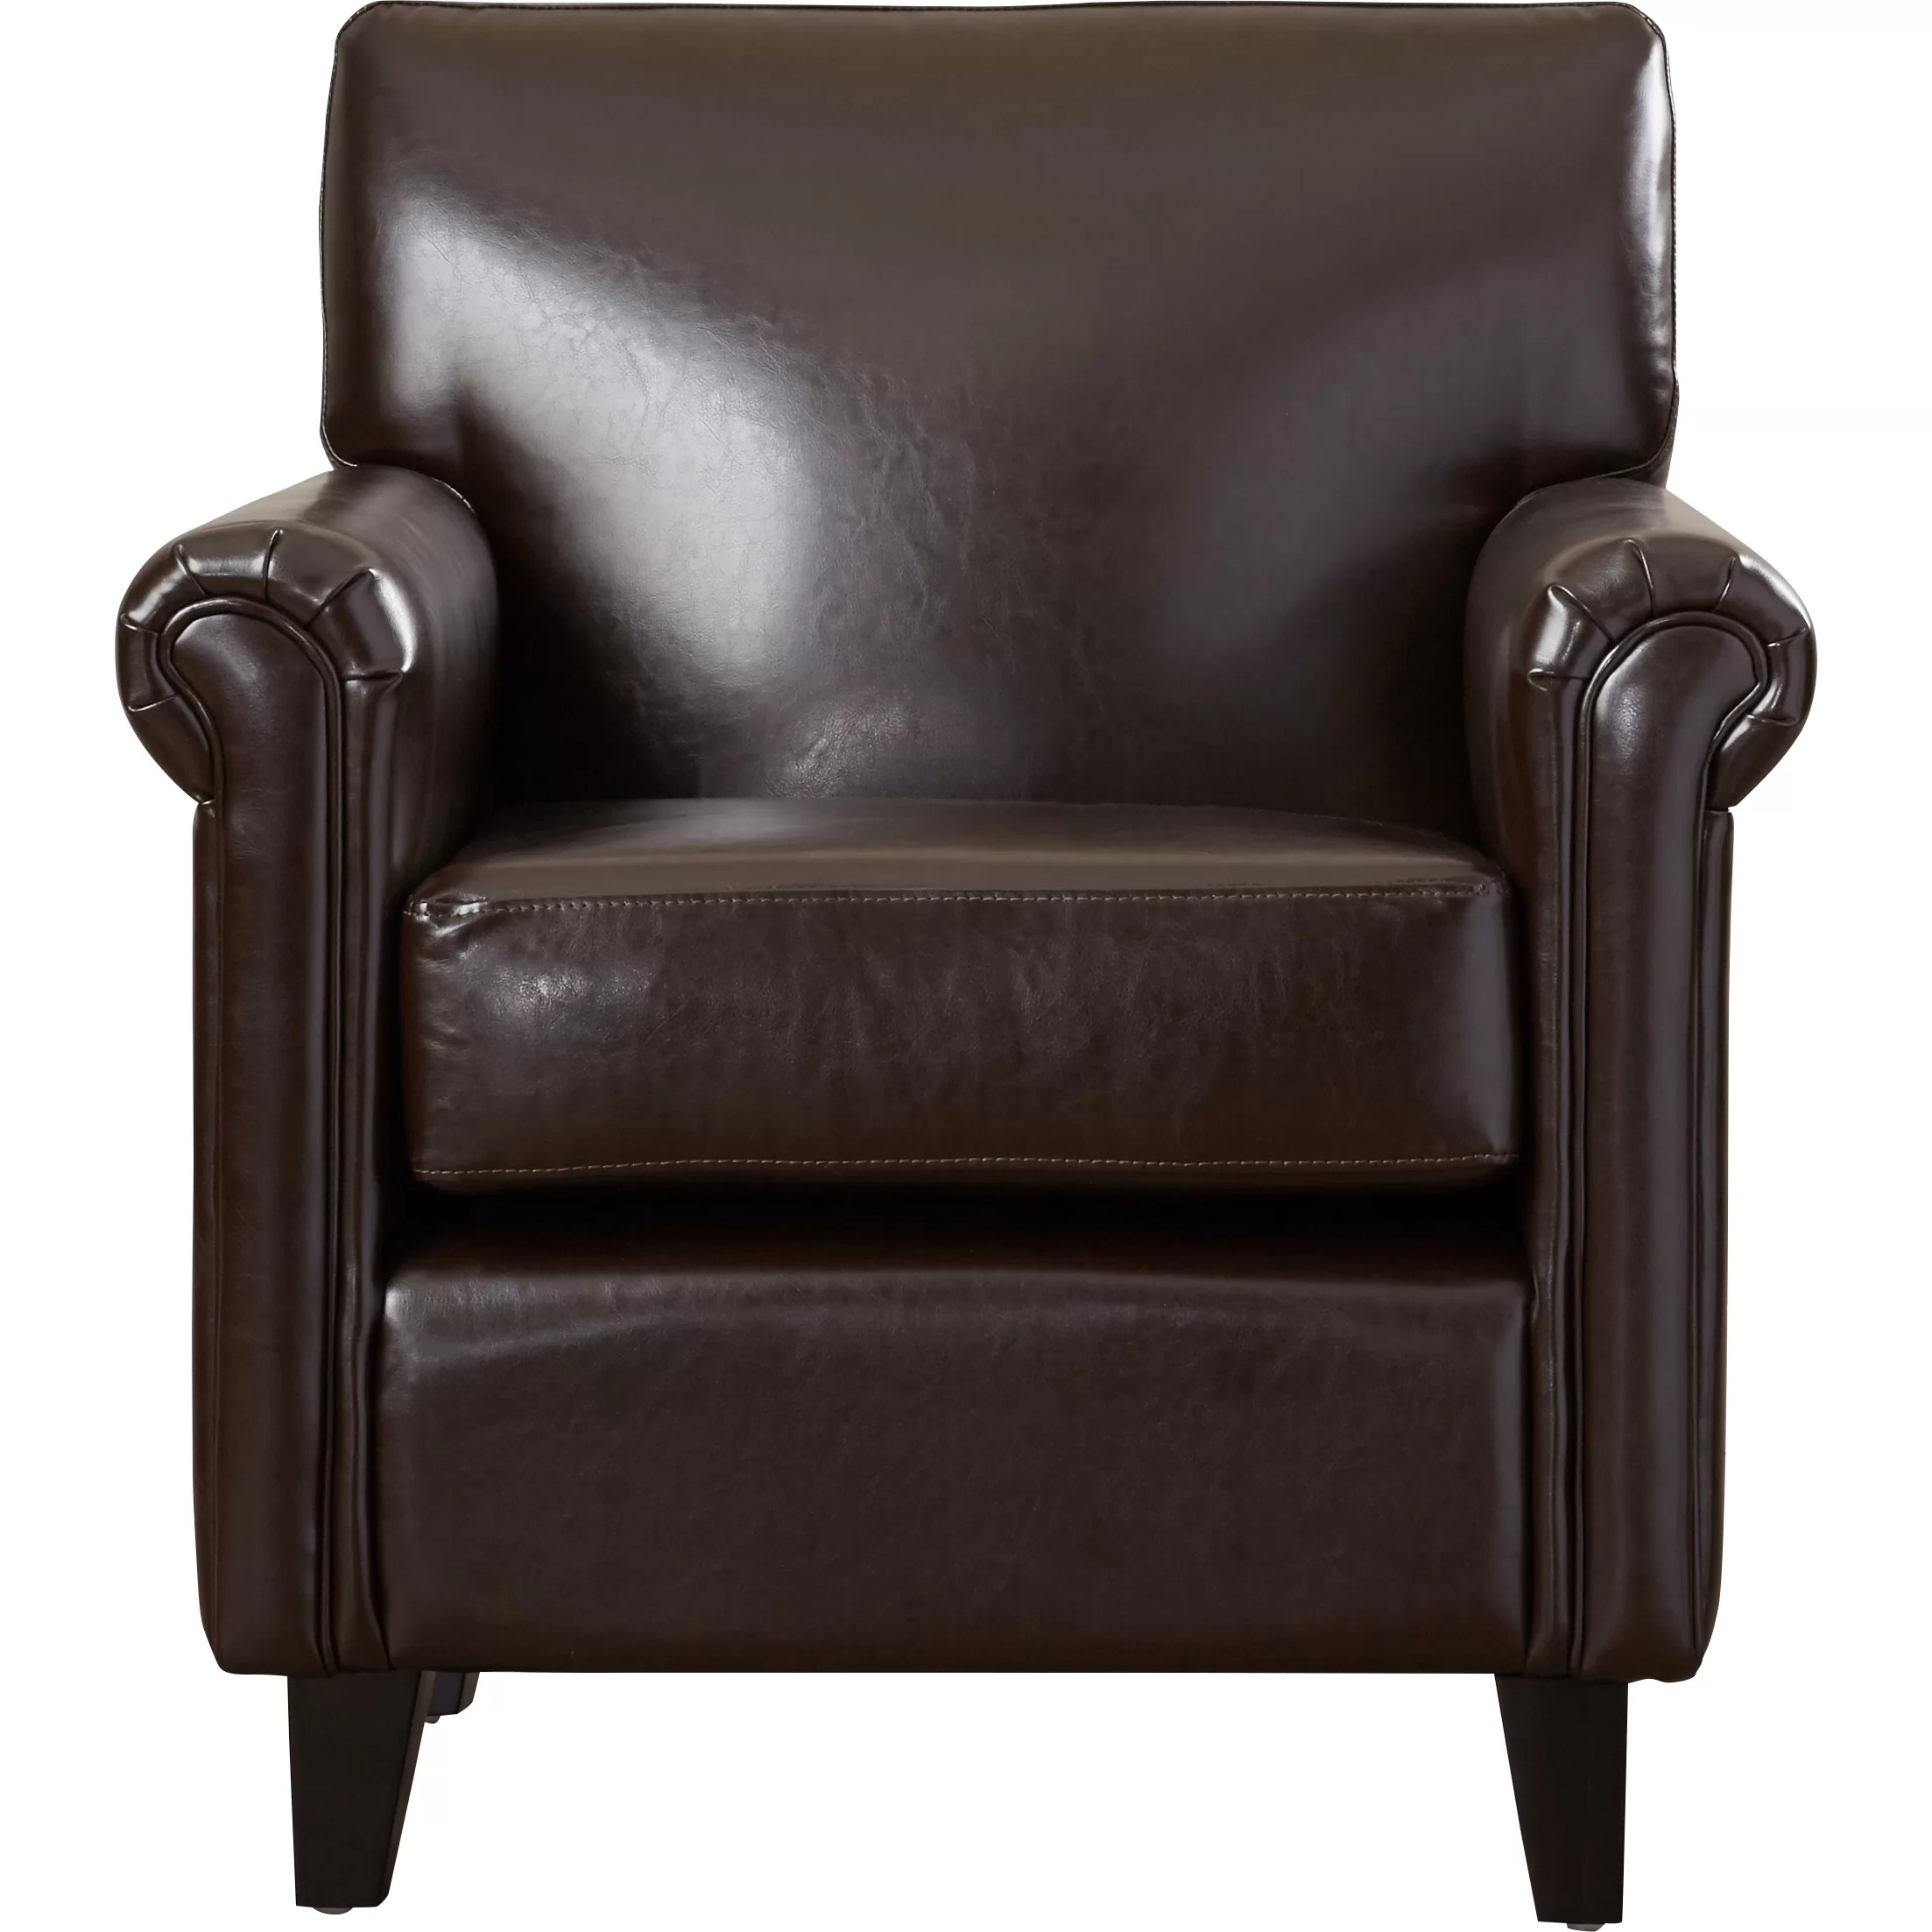 Armed Accent Chairs Horsham Upholstered Arm Chair Wayfair